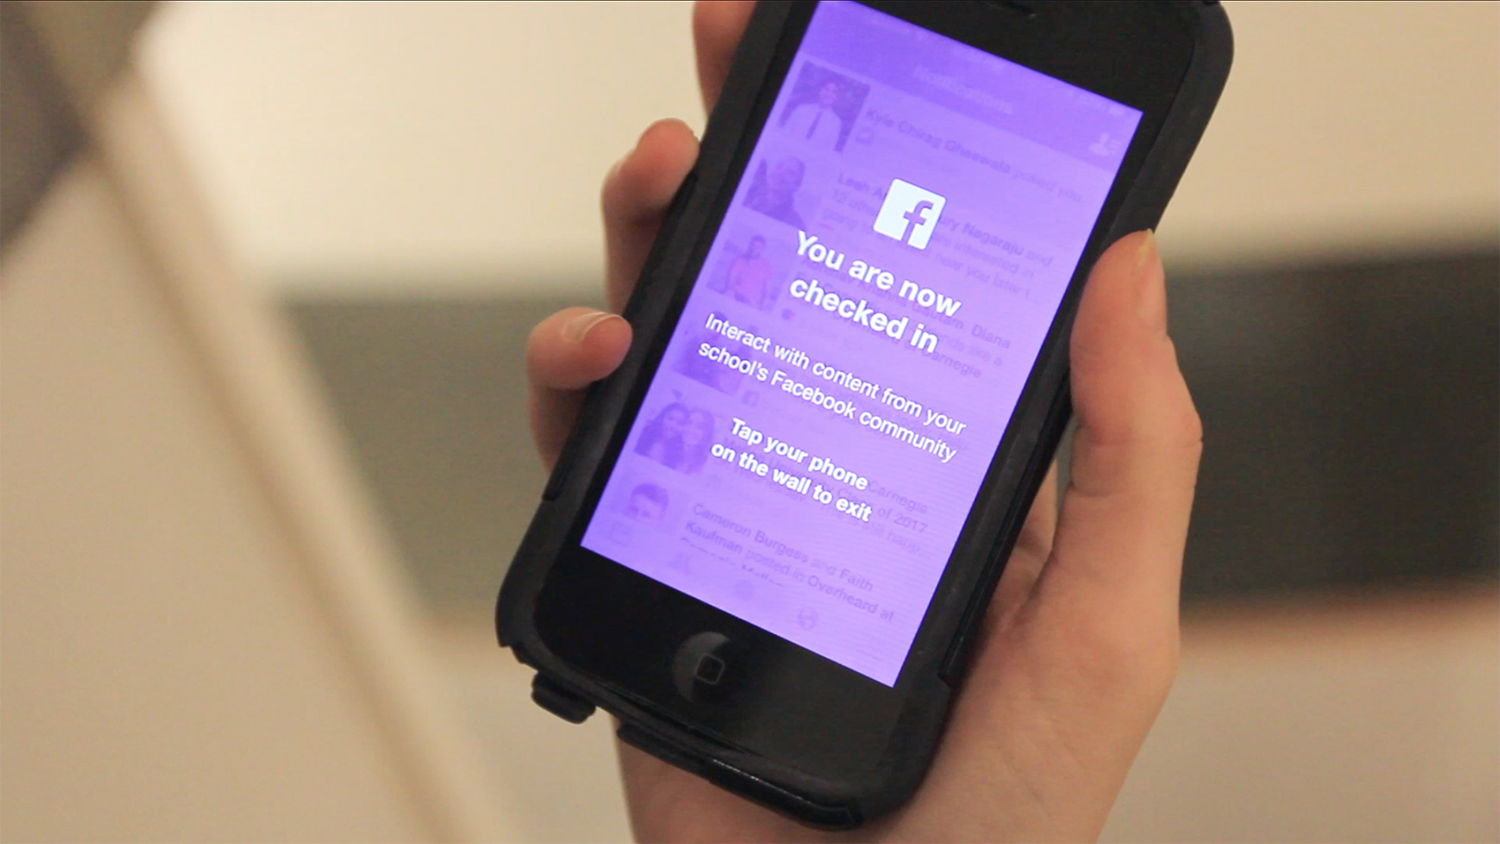 Facebook's new feature, the purple hashtag, leads users to the wall and is their entryway to the product. Once they tap their phone to sign in at the wall, however, their Facebook mobile app will be blocked from any activity so they are prompted to interact with the wall and be physically engaged.